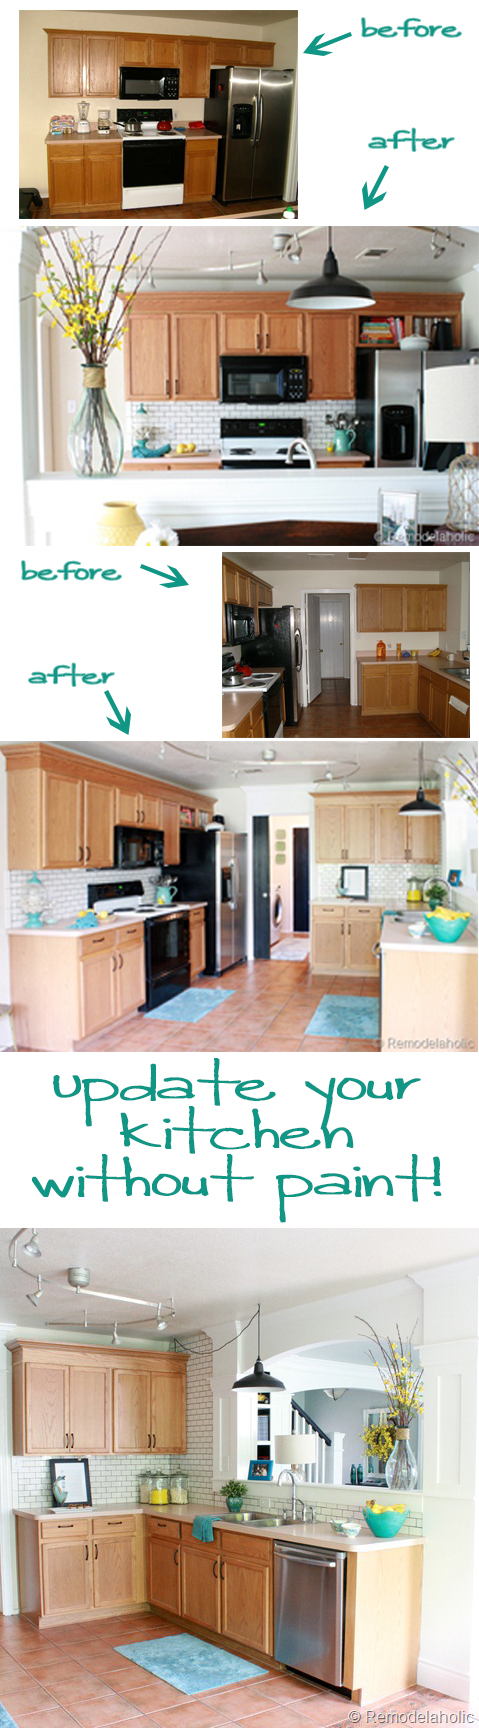 Kitchen Makeover without painting @remodelaholic #kitchen #Makeover #wood_cabinets